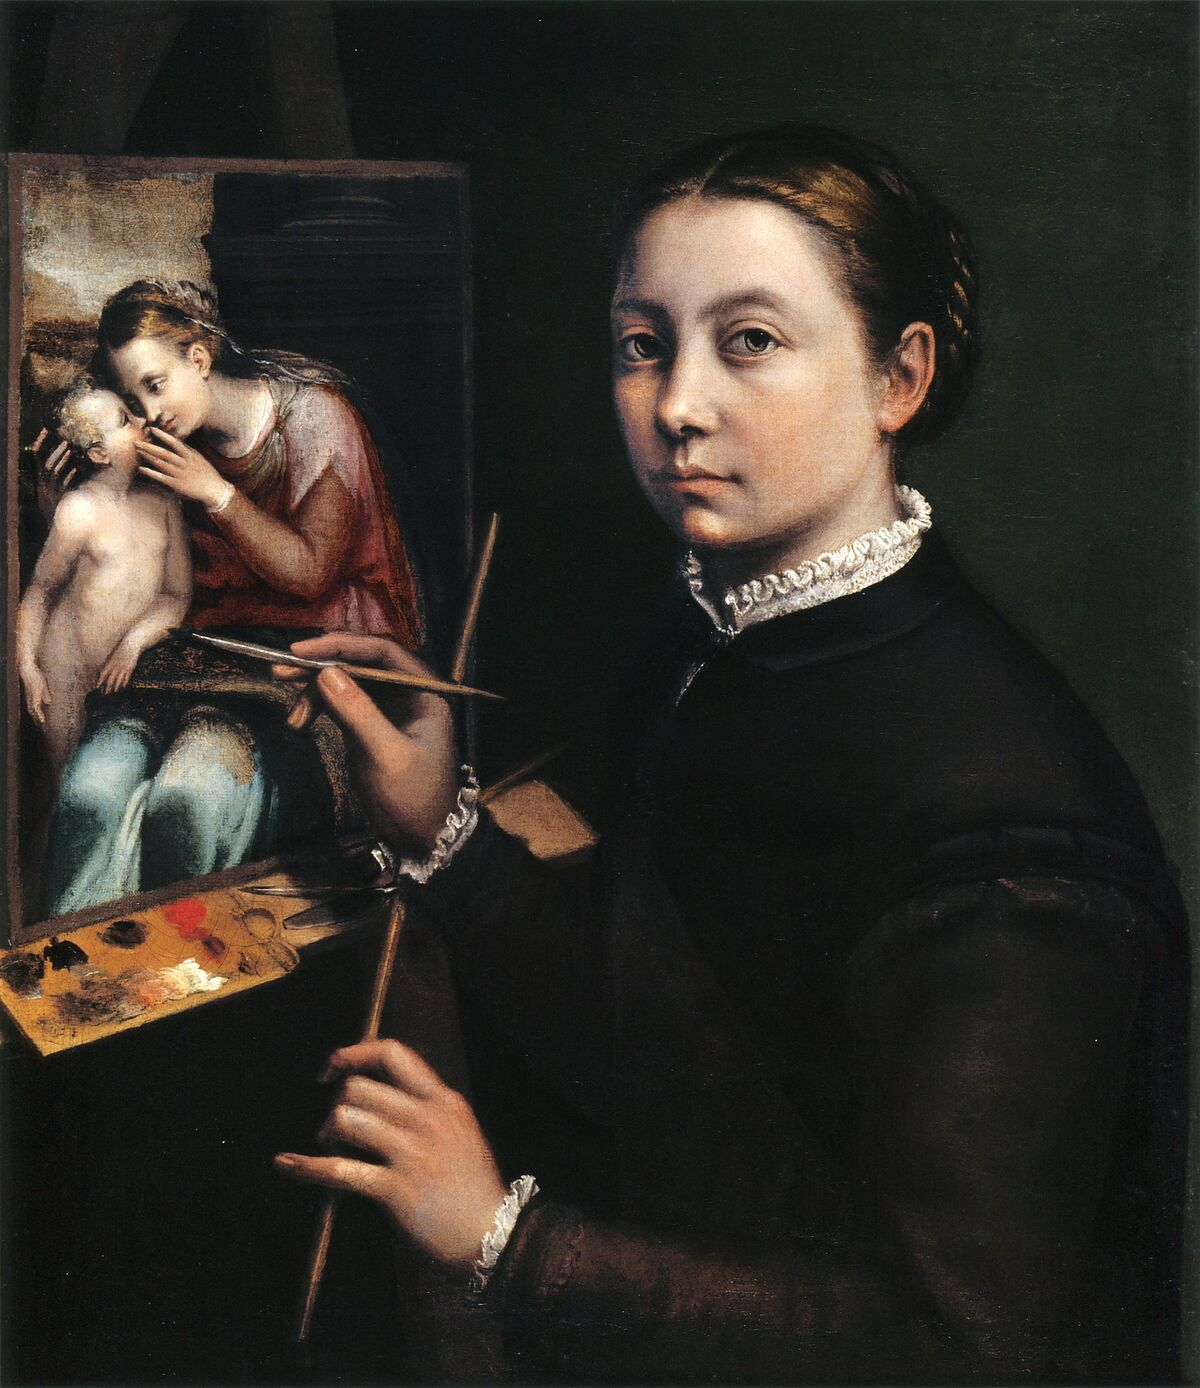 b278f05f60d57 How Female Artists Have Used the Self-Portrait for Centuries - Artsy